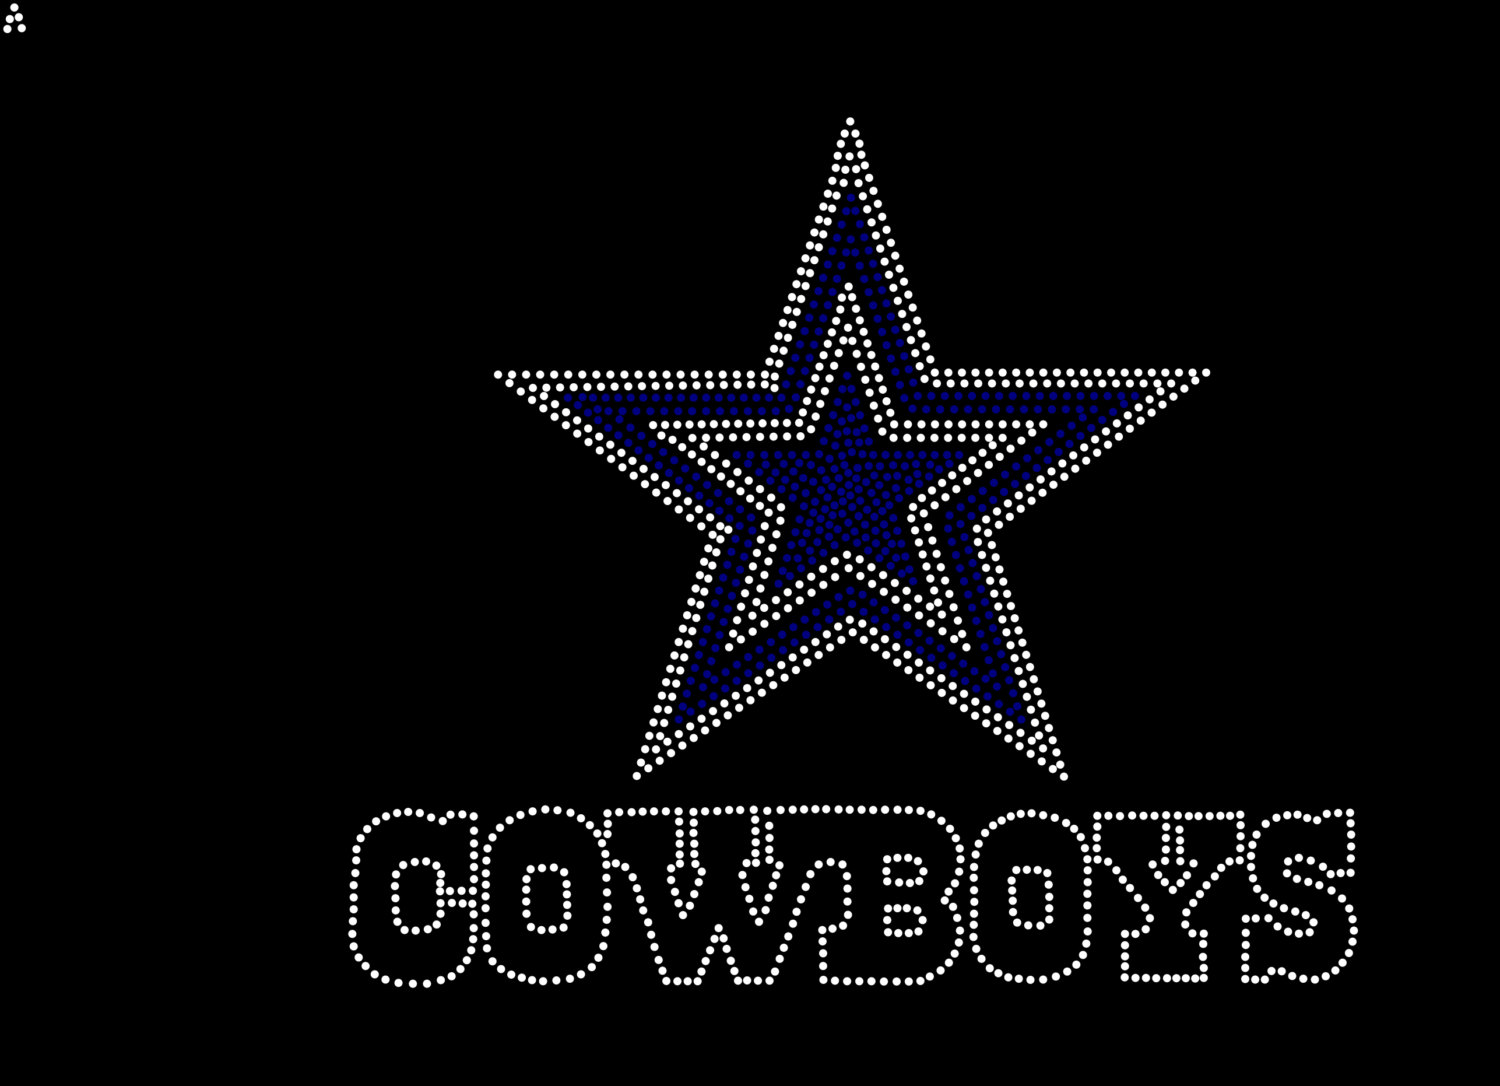 Dallas Cowboys Logo Rhinestone Killjoy Rhinestone Designs 6ac6cde66